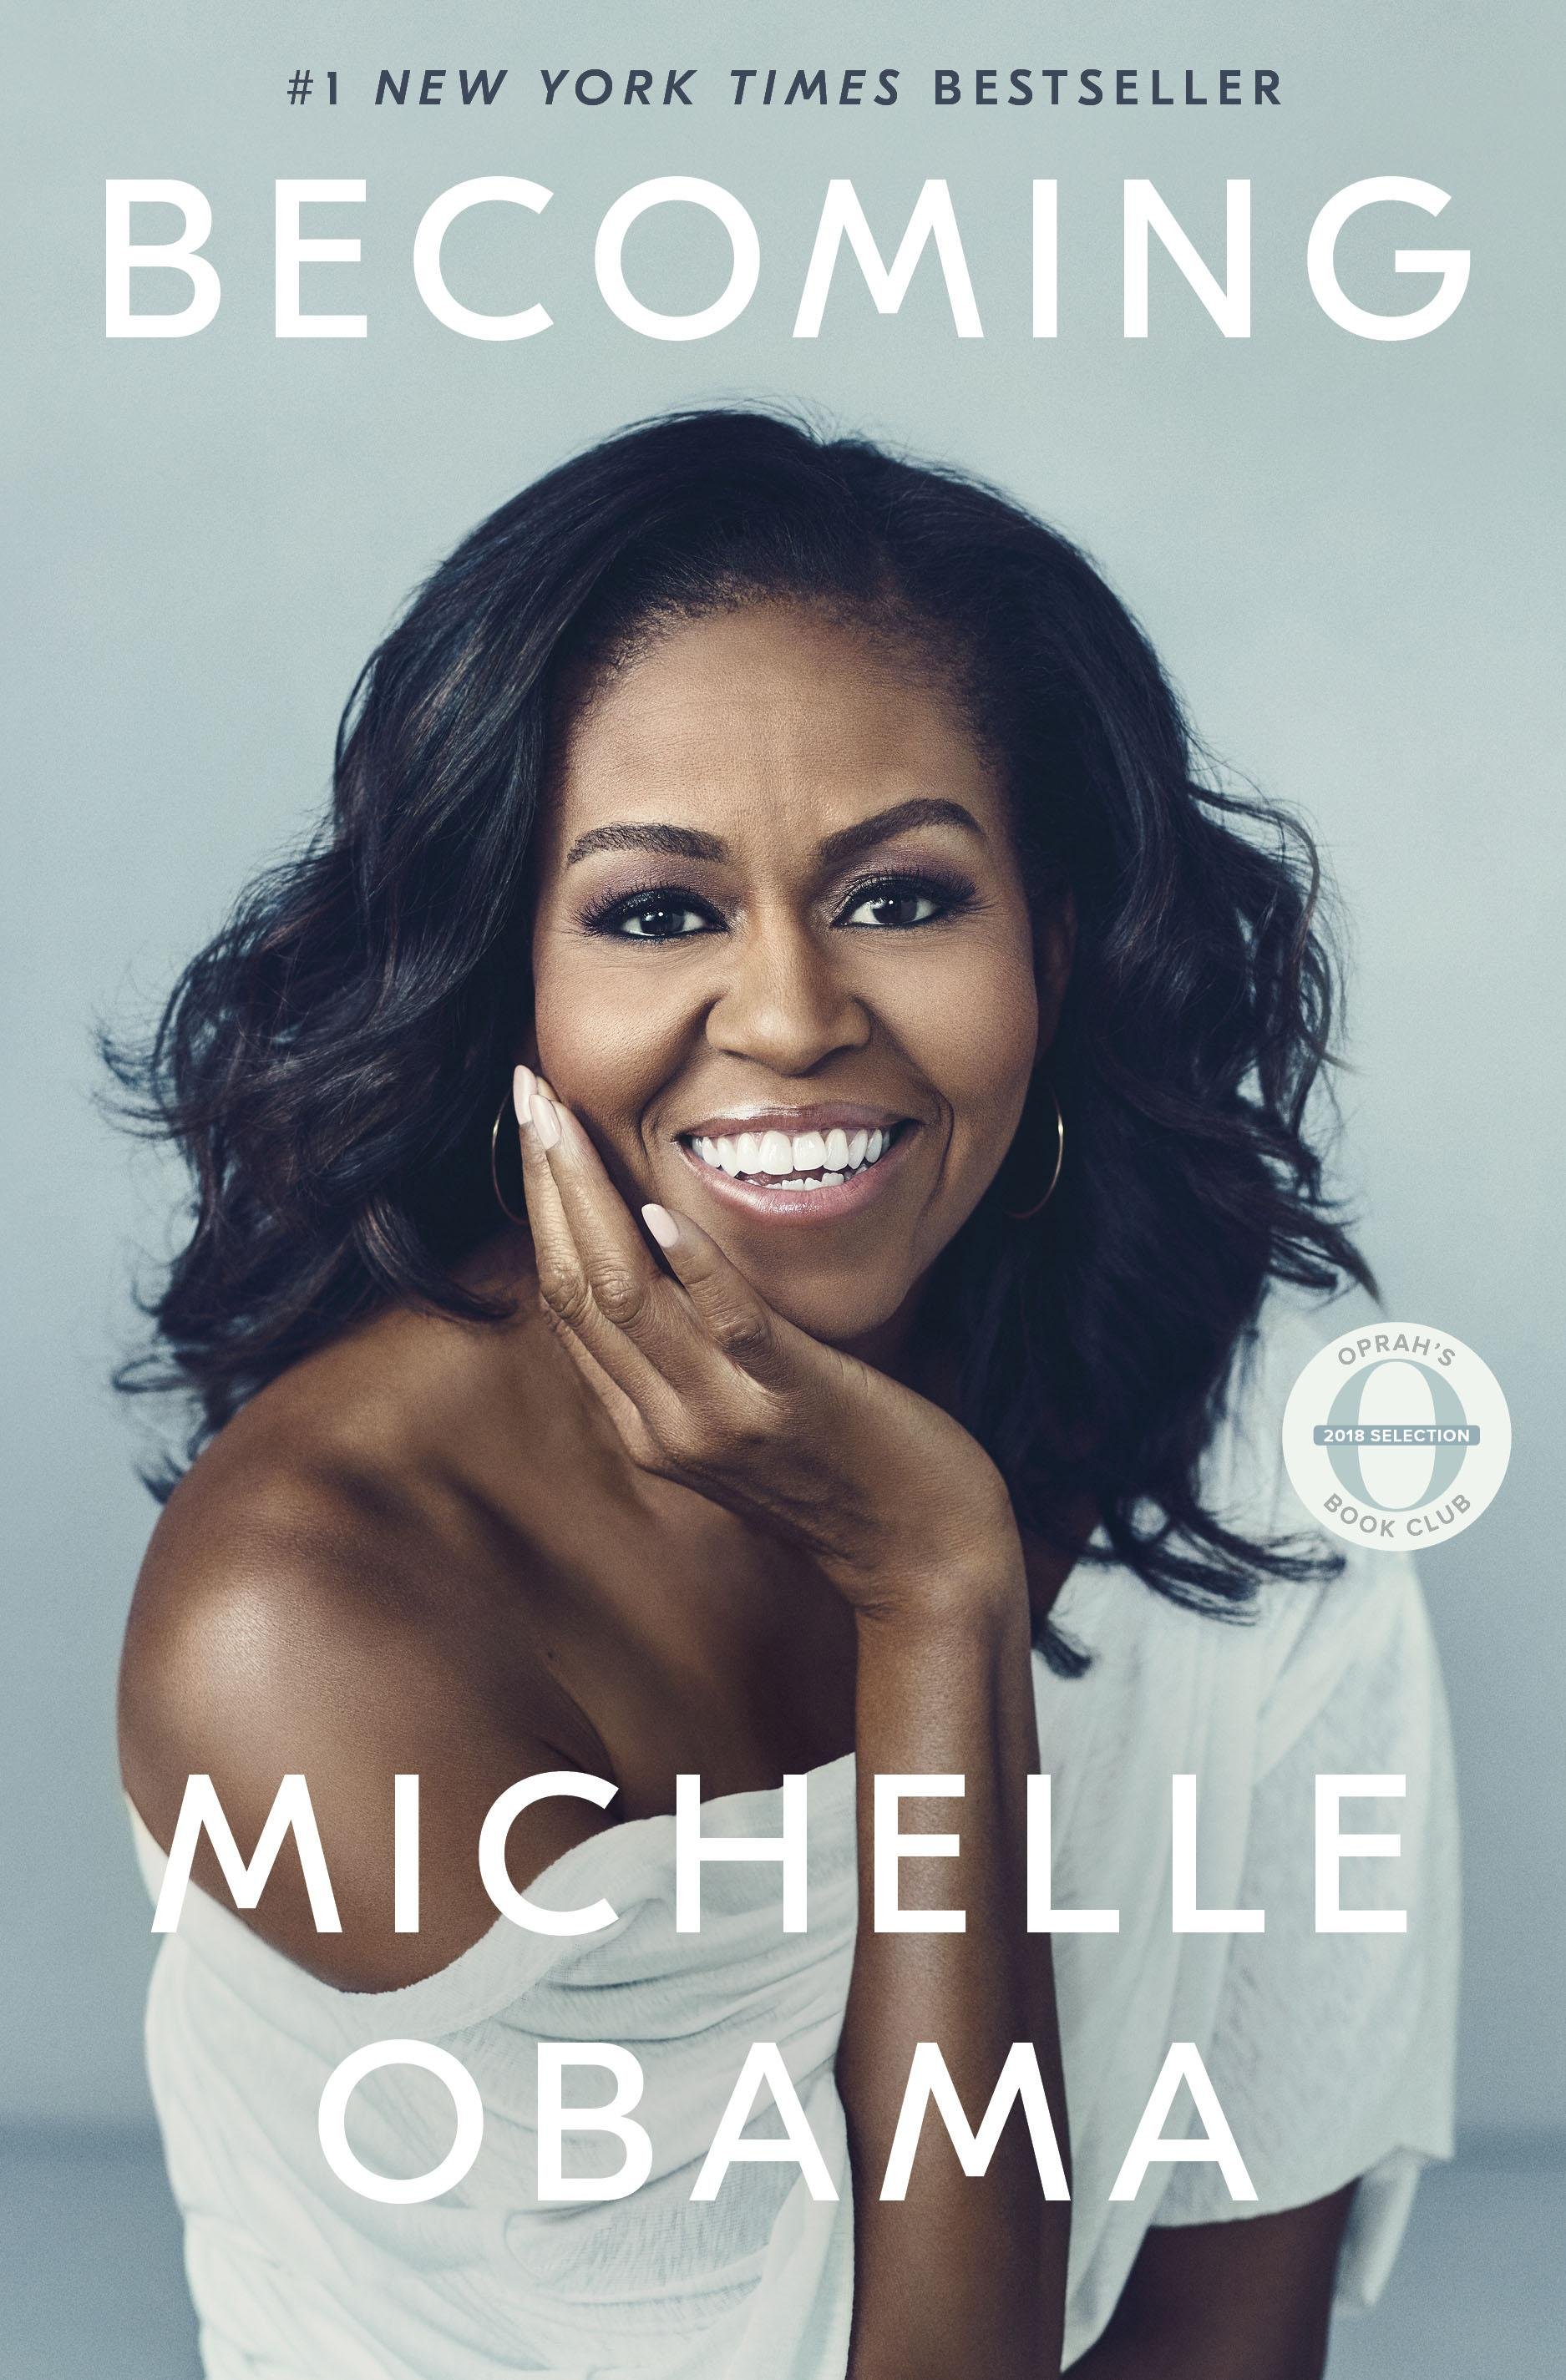 """Becoming"" by Michelle Obama (Image: Courtesy Crown Publishing Group){ }"